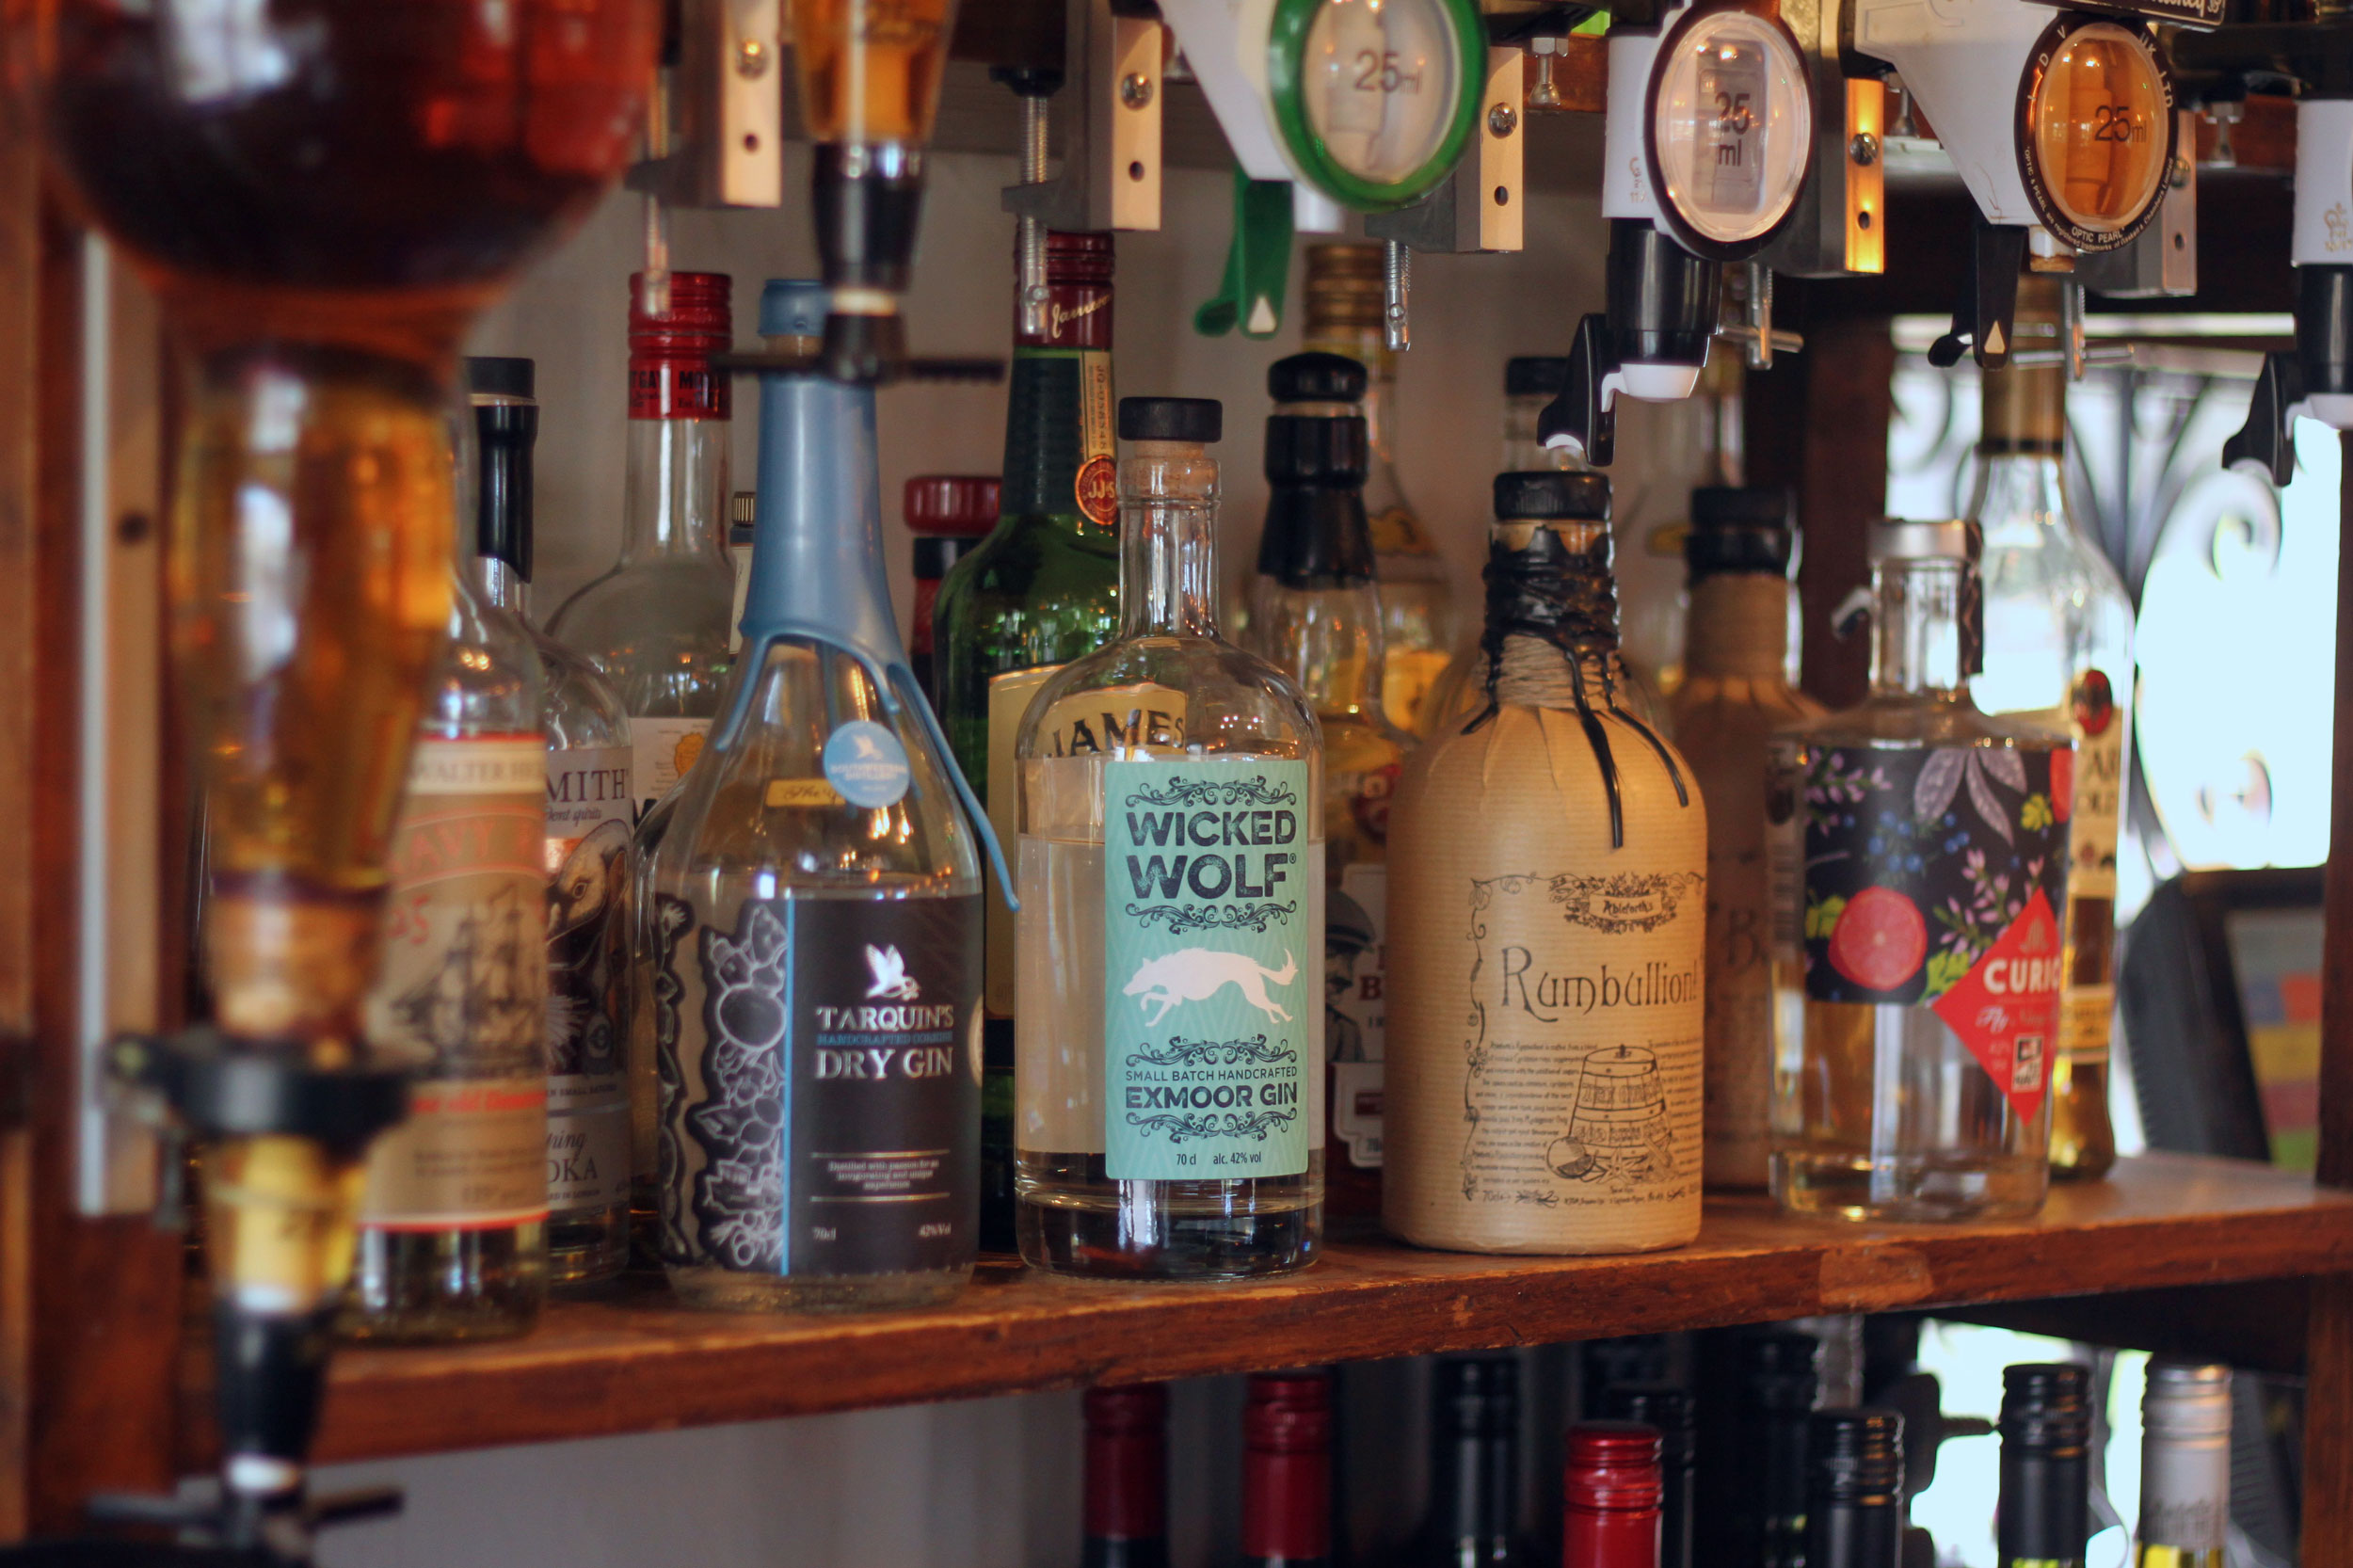 The-Thatched-Inn-Gins-Spirits-Cocktails.jpg